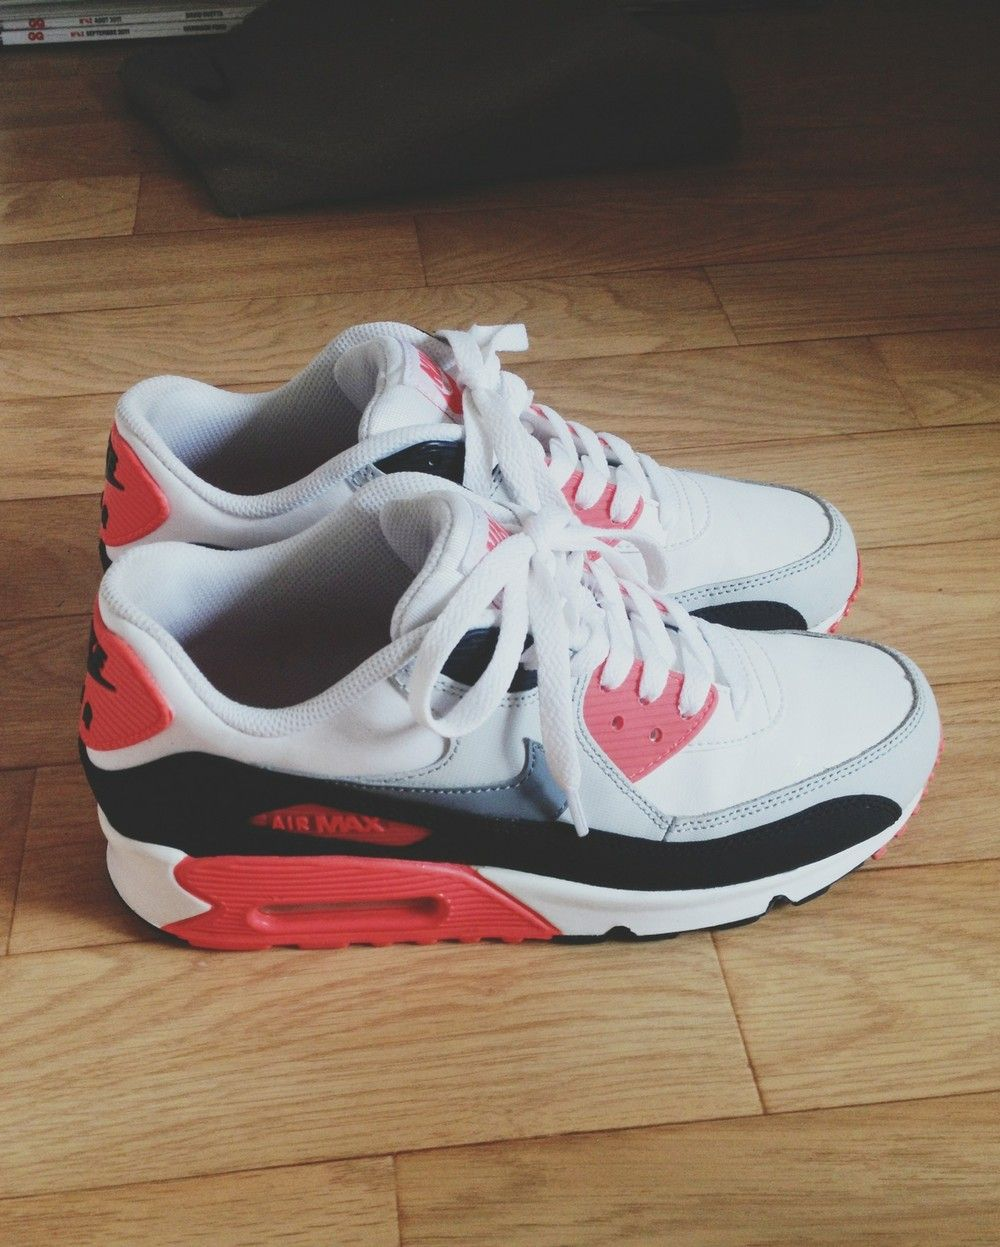 NIKE AIR MAX 90 INFRARED T38.5 via lecoindelodie. Click on the image